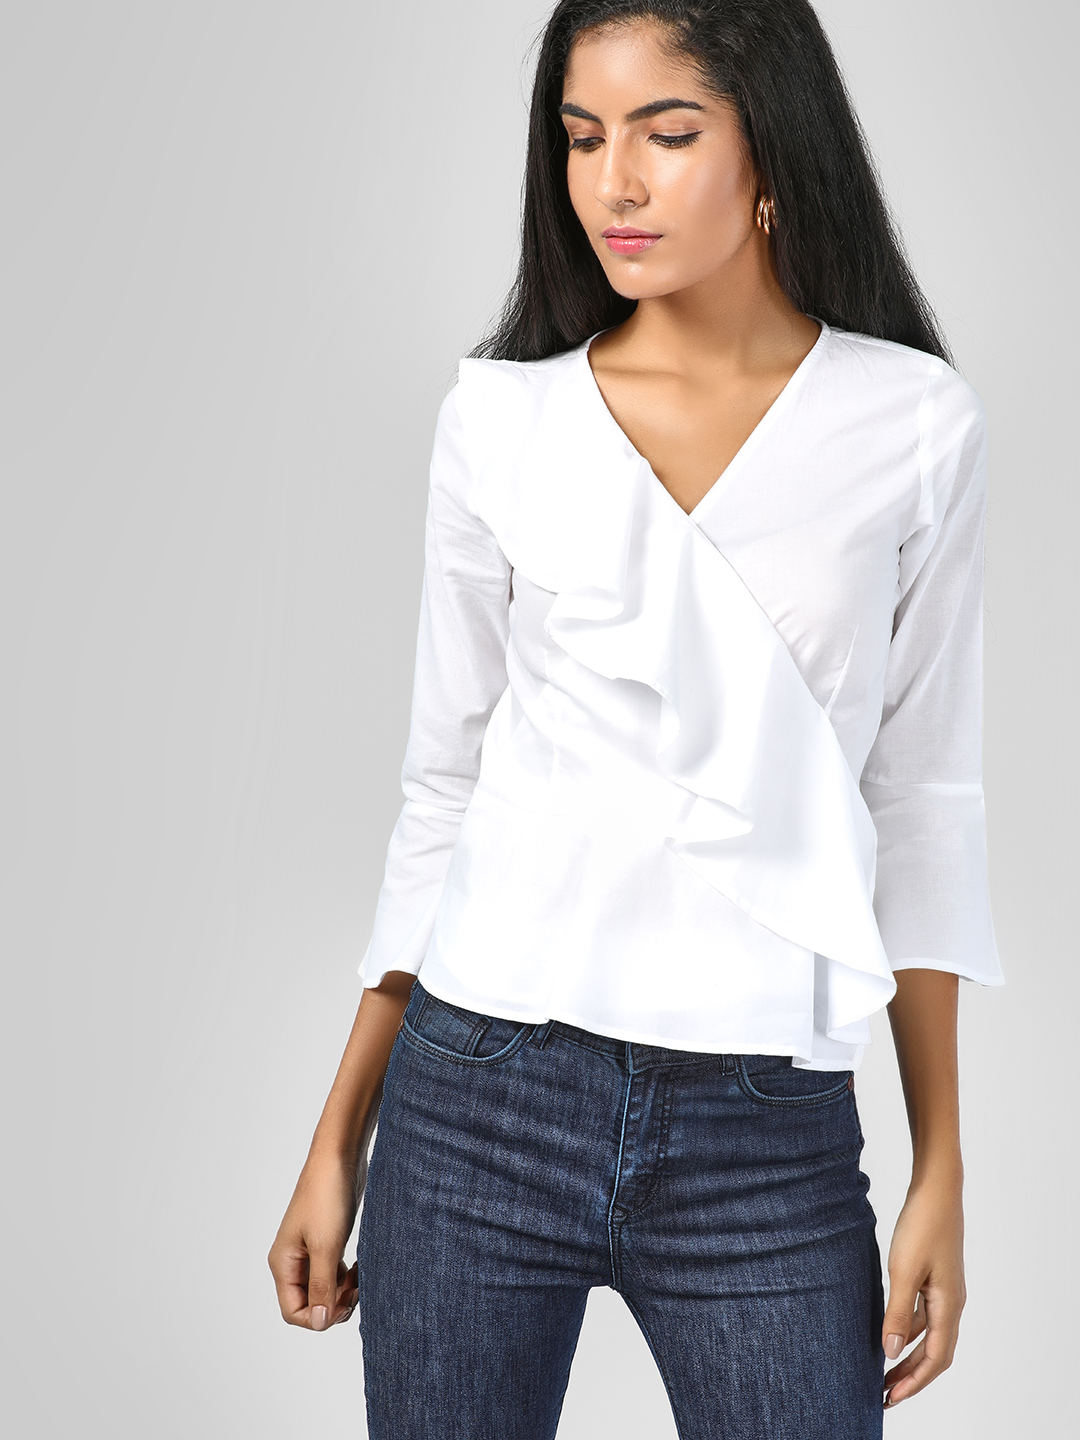 SCULLERS FOR HER White Ruffled Tie Up Blouse 1